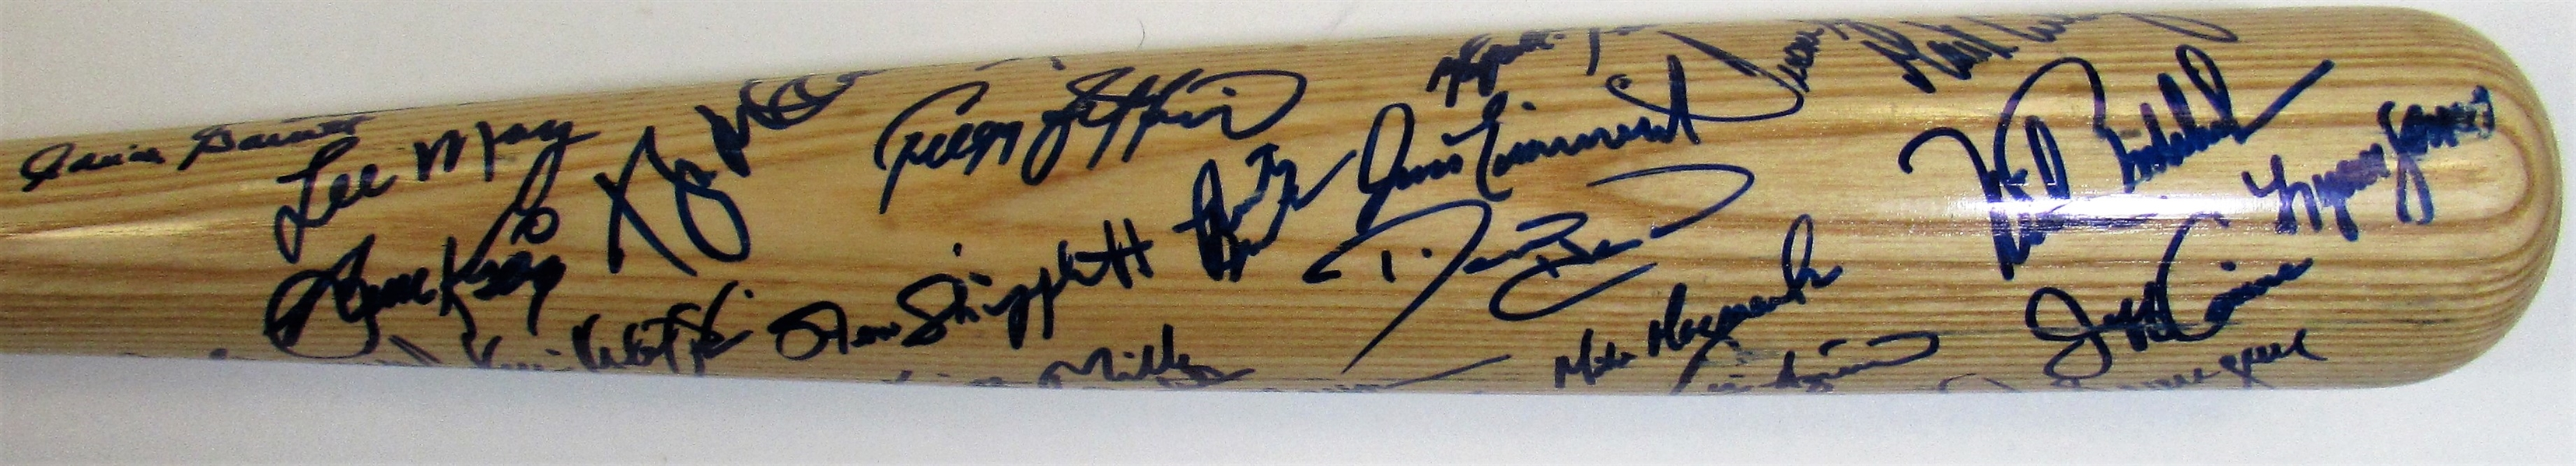 1992 K.C. Royals GI Team Signed Bat